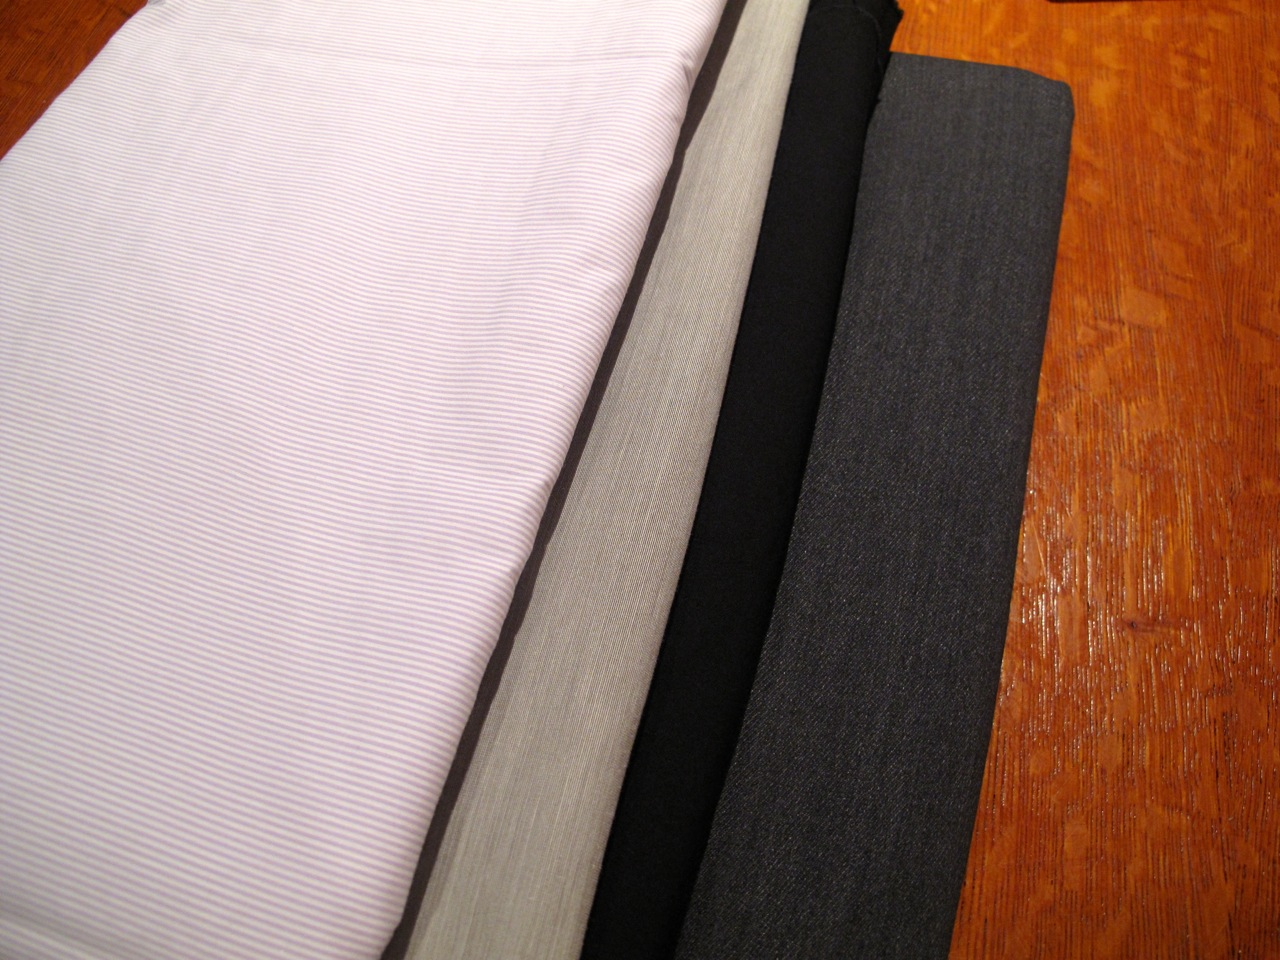 The second one is the grey that Mr Garment did not care for. The other three are his choices.